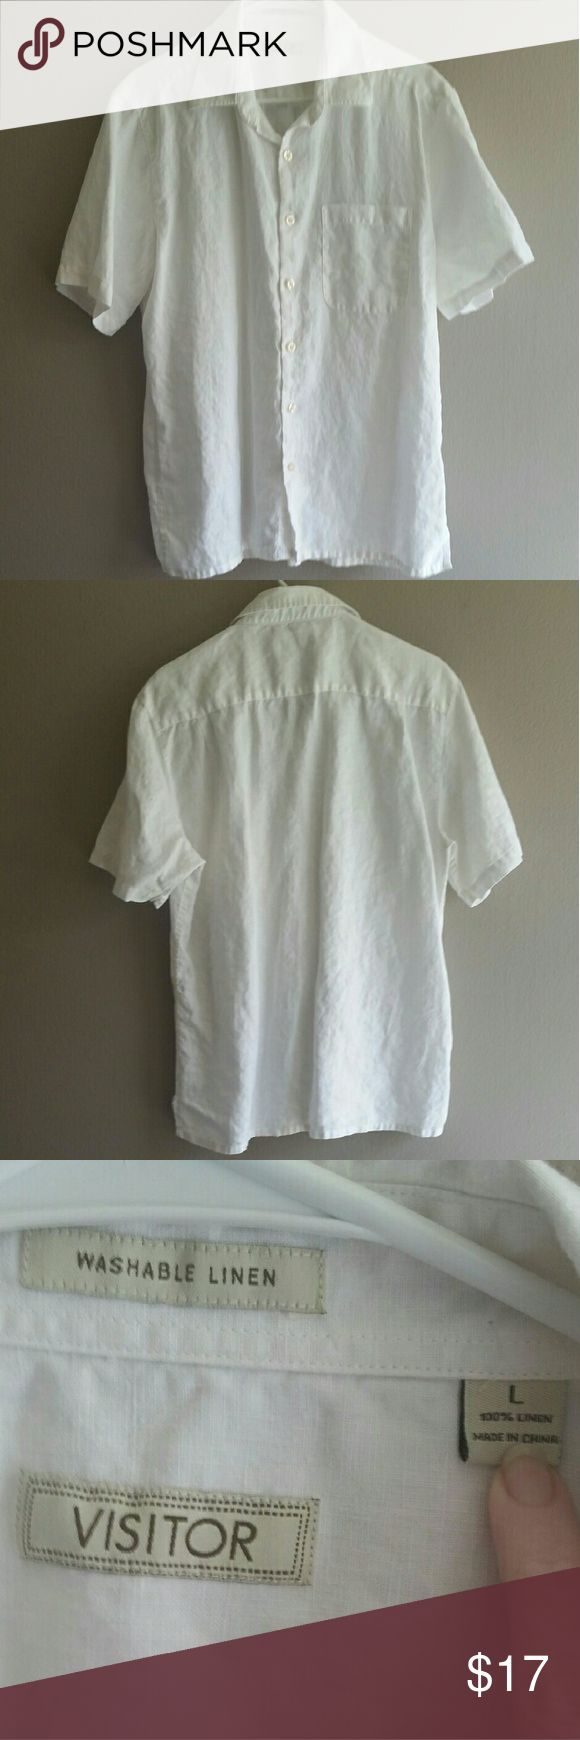 Linen short sleeve button down by visitor CONDITION: Like New  --- CONCERNS: none  --- I will provide more pics, materials, measurements, etc. upon request! --- ***I welcome ALL OFFERS and do bundle discounts!*** Visitor Shirts Casual Button Down Shirts